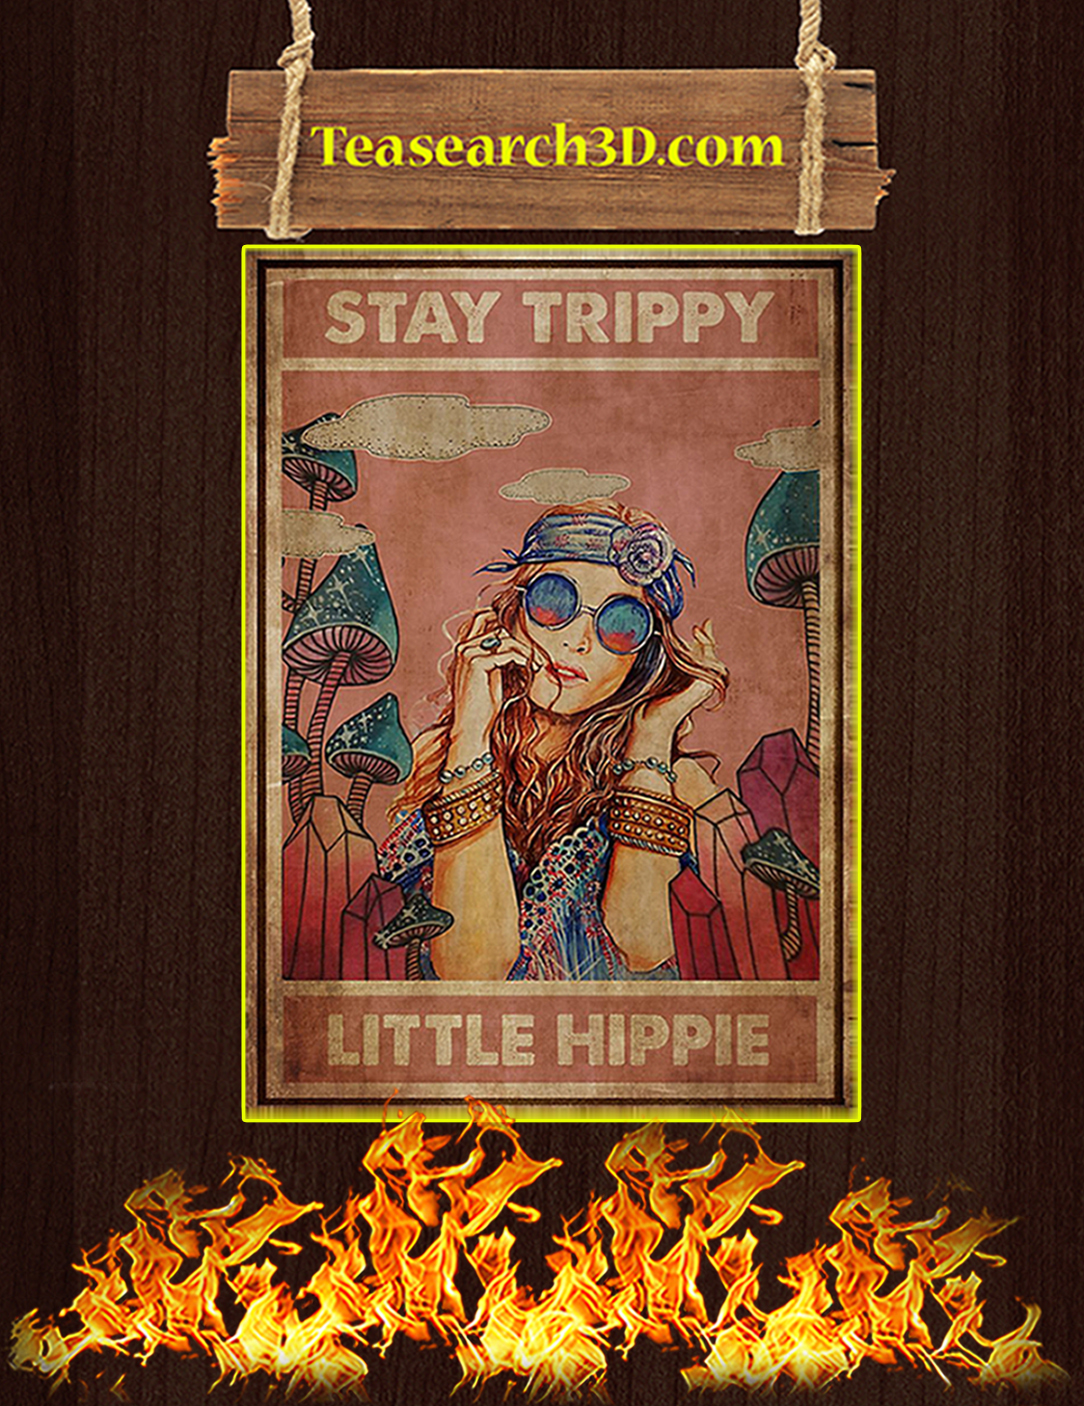 Stay trippy little hippie poster A2